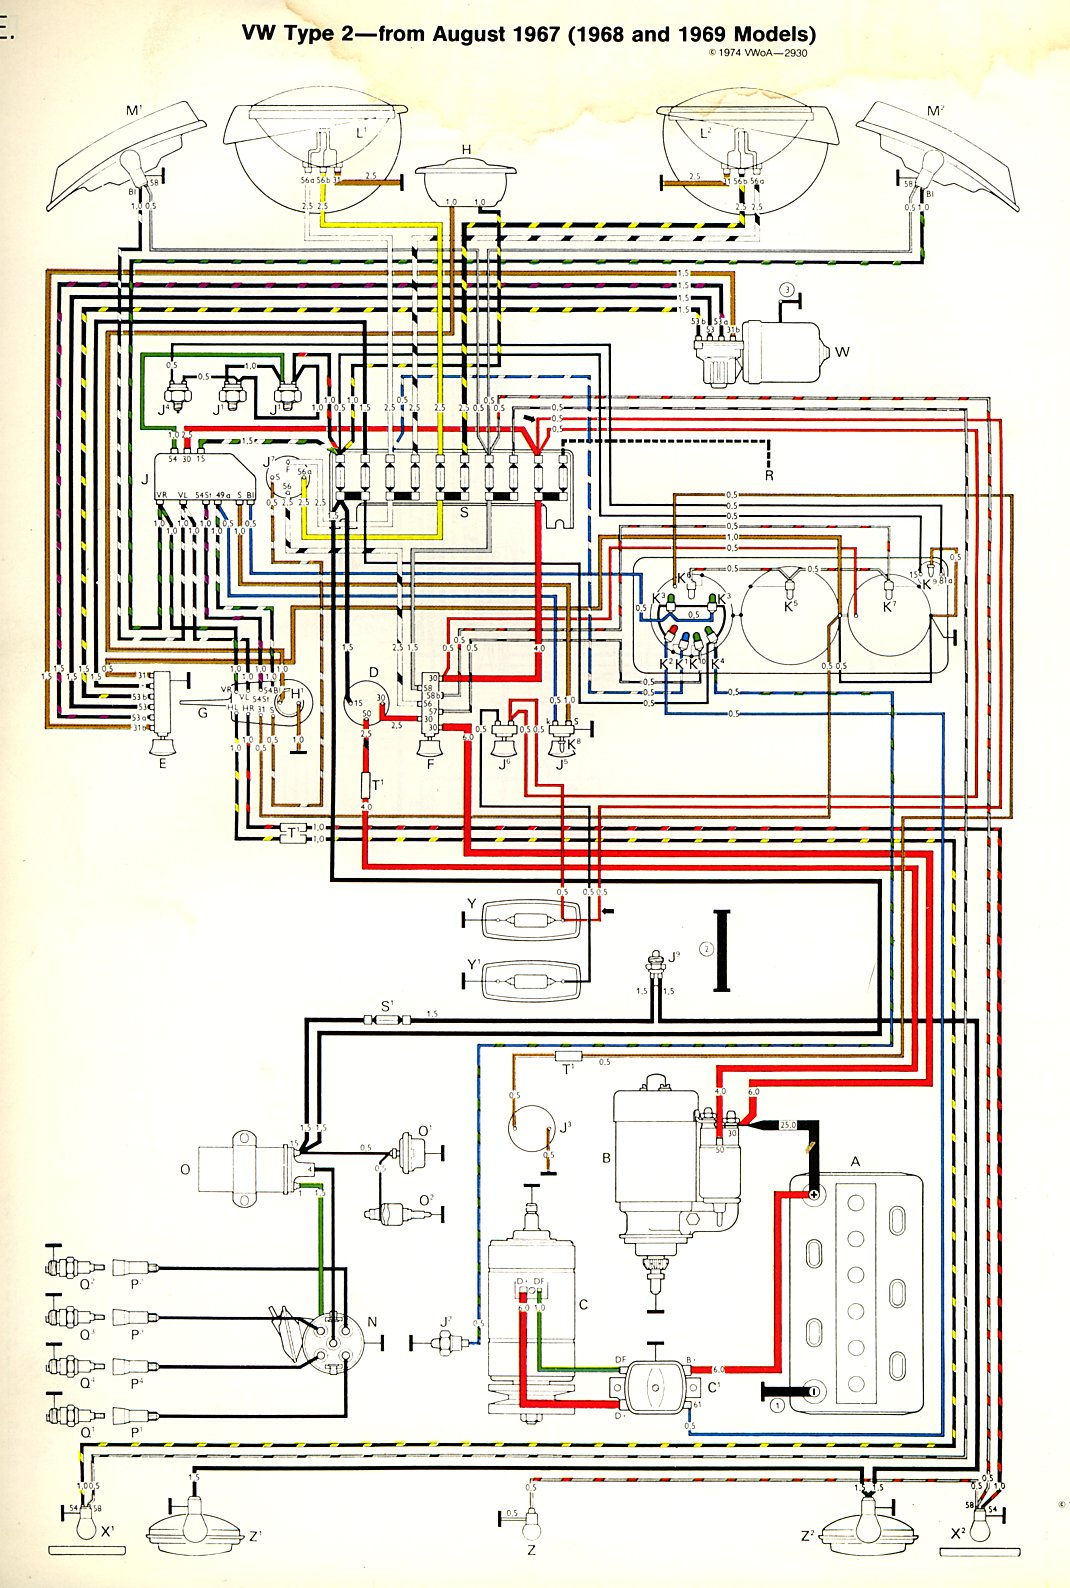 thesamba.com :: type 2 wiring diagrams 1963 vw double cab wiring diagrams vw double relay wiring diagrams 1978